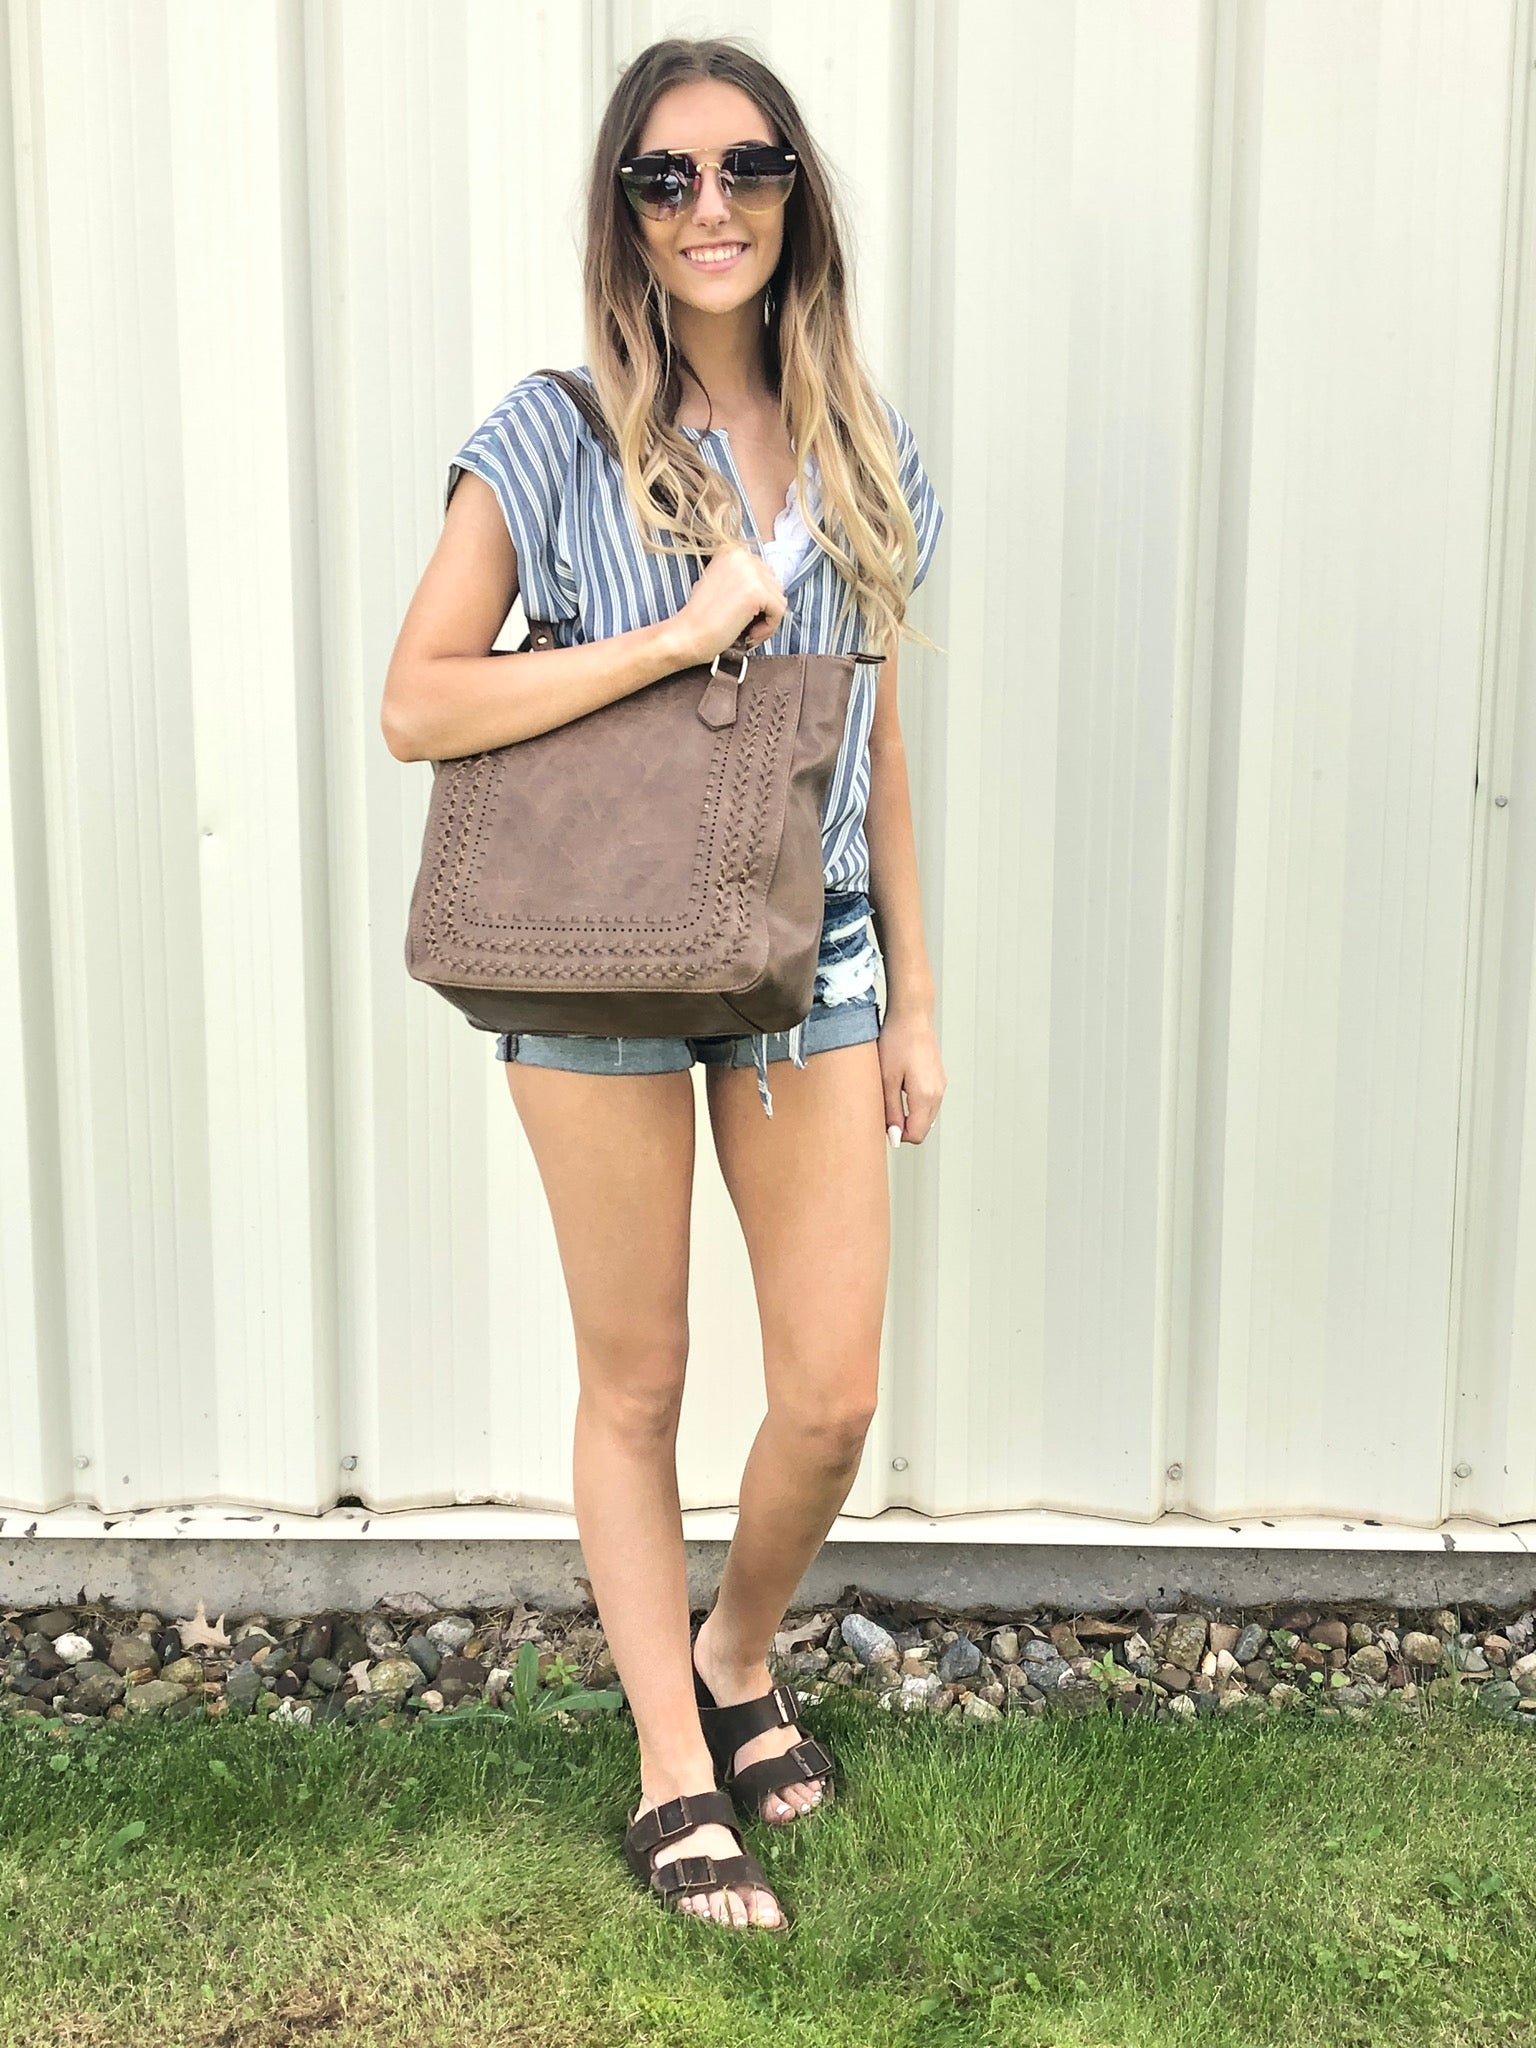 Legendary Braided Square Shoulder Bag- Mutliple Color Options